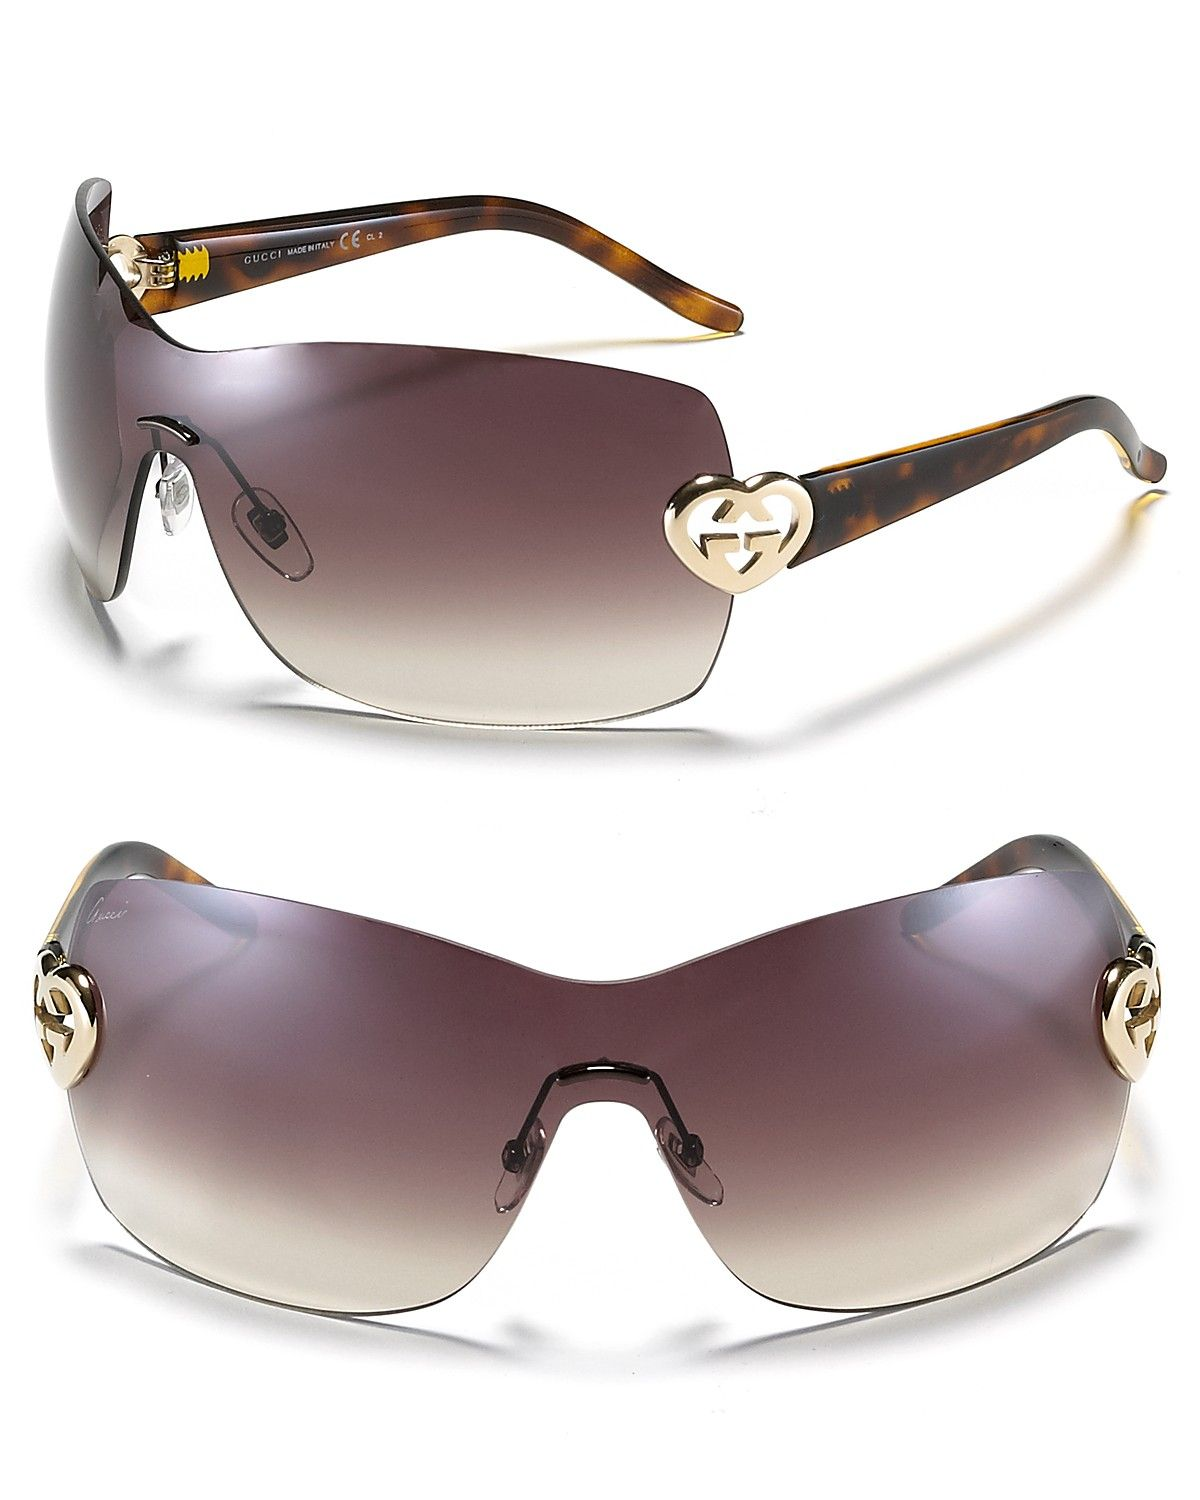 f49b642bbb7 Gucci Shield Sunglasses with G Heart Logo - Gucci - Designer Shops - Jewelry    Accessories - Bloomingdale s